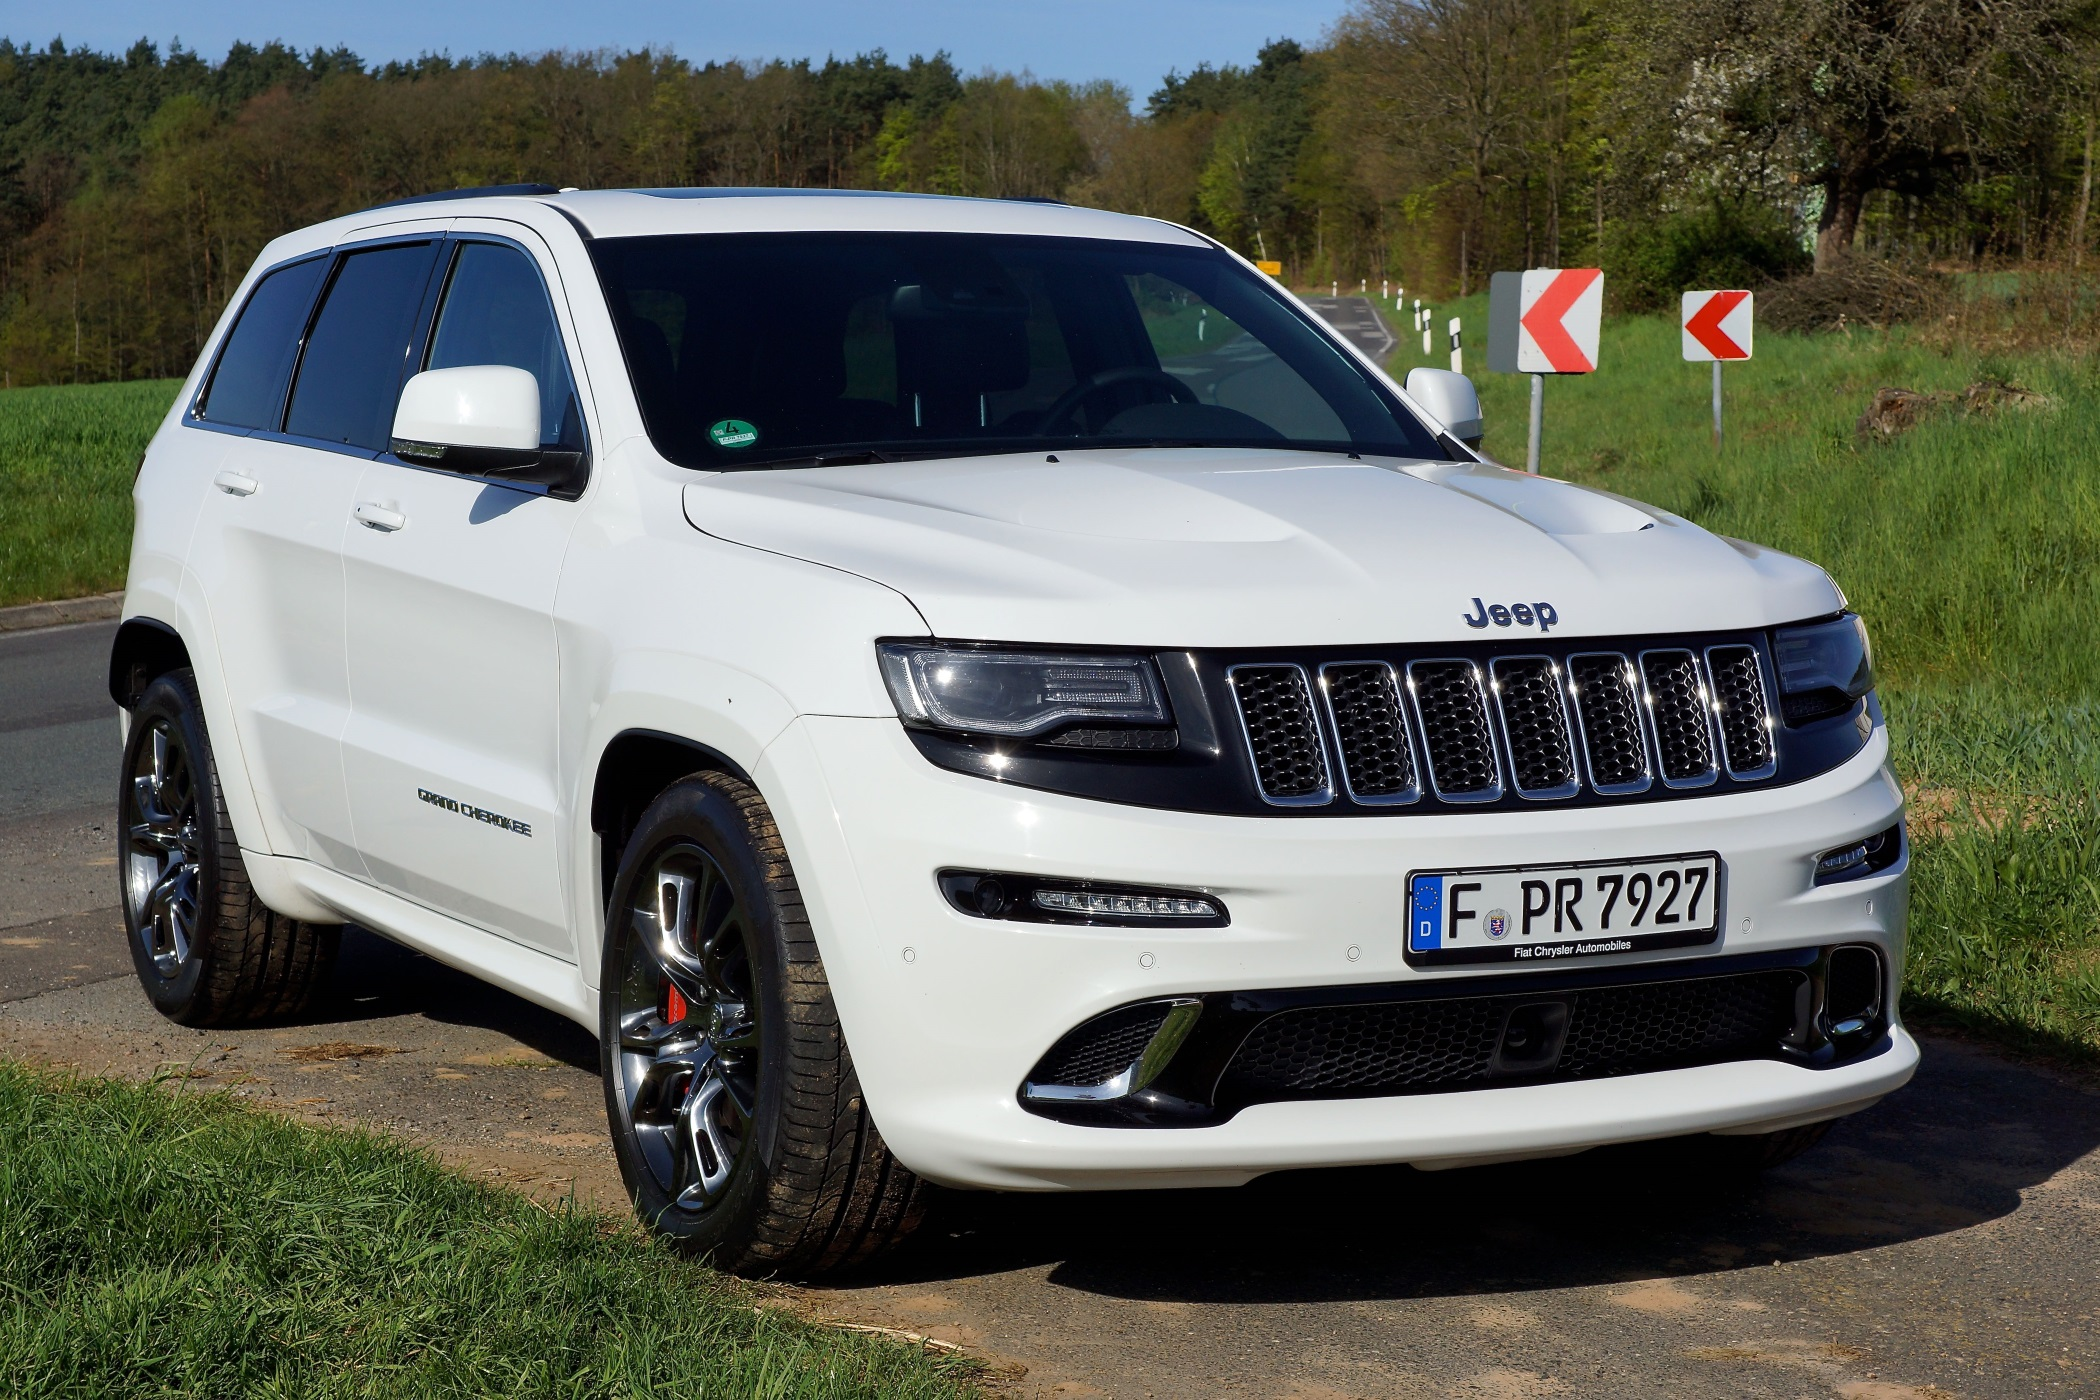 jeep grand cherokee srt 6 4l v8 weil autos einfach spa. Black Bedroom Furniture Sets. Home Design Ideas